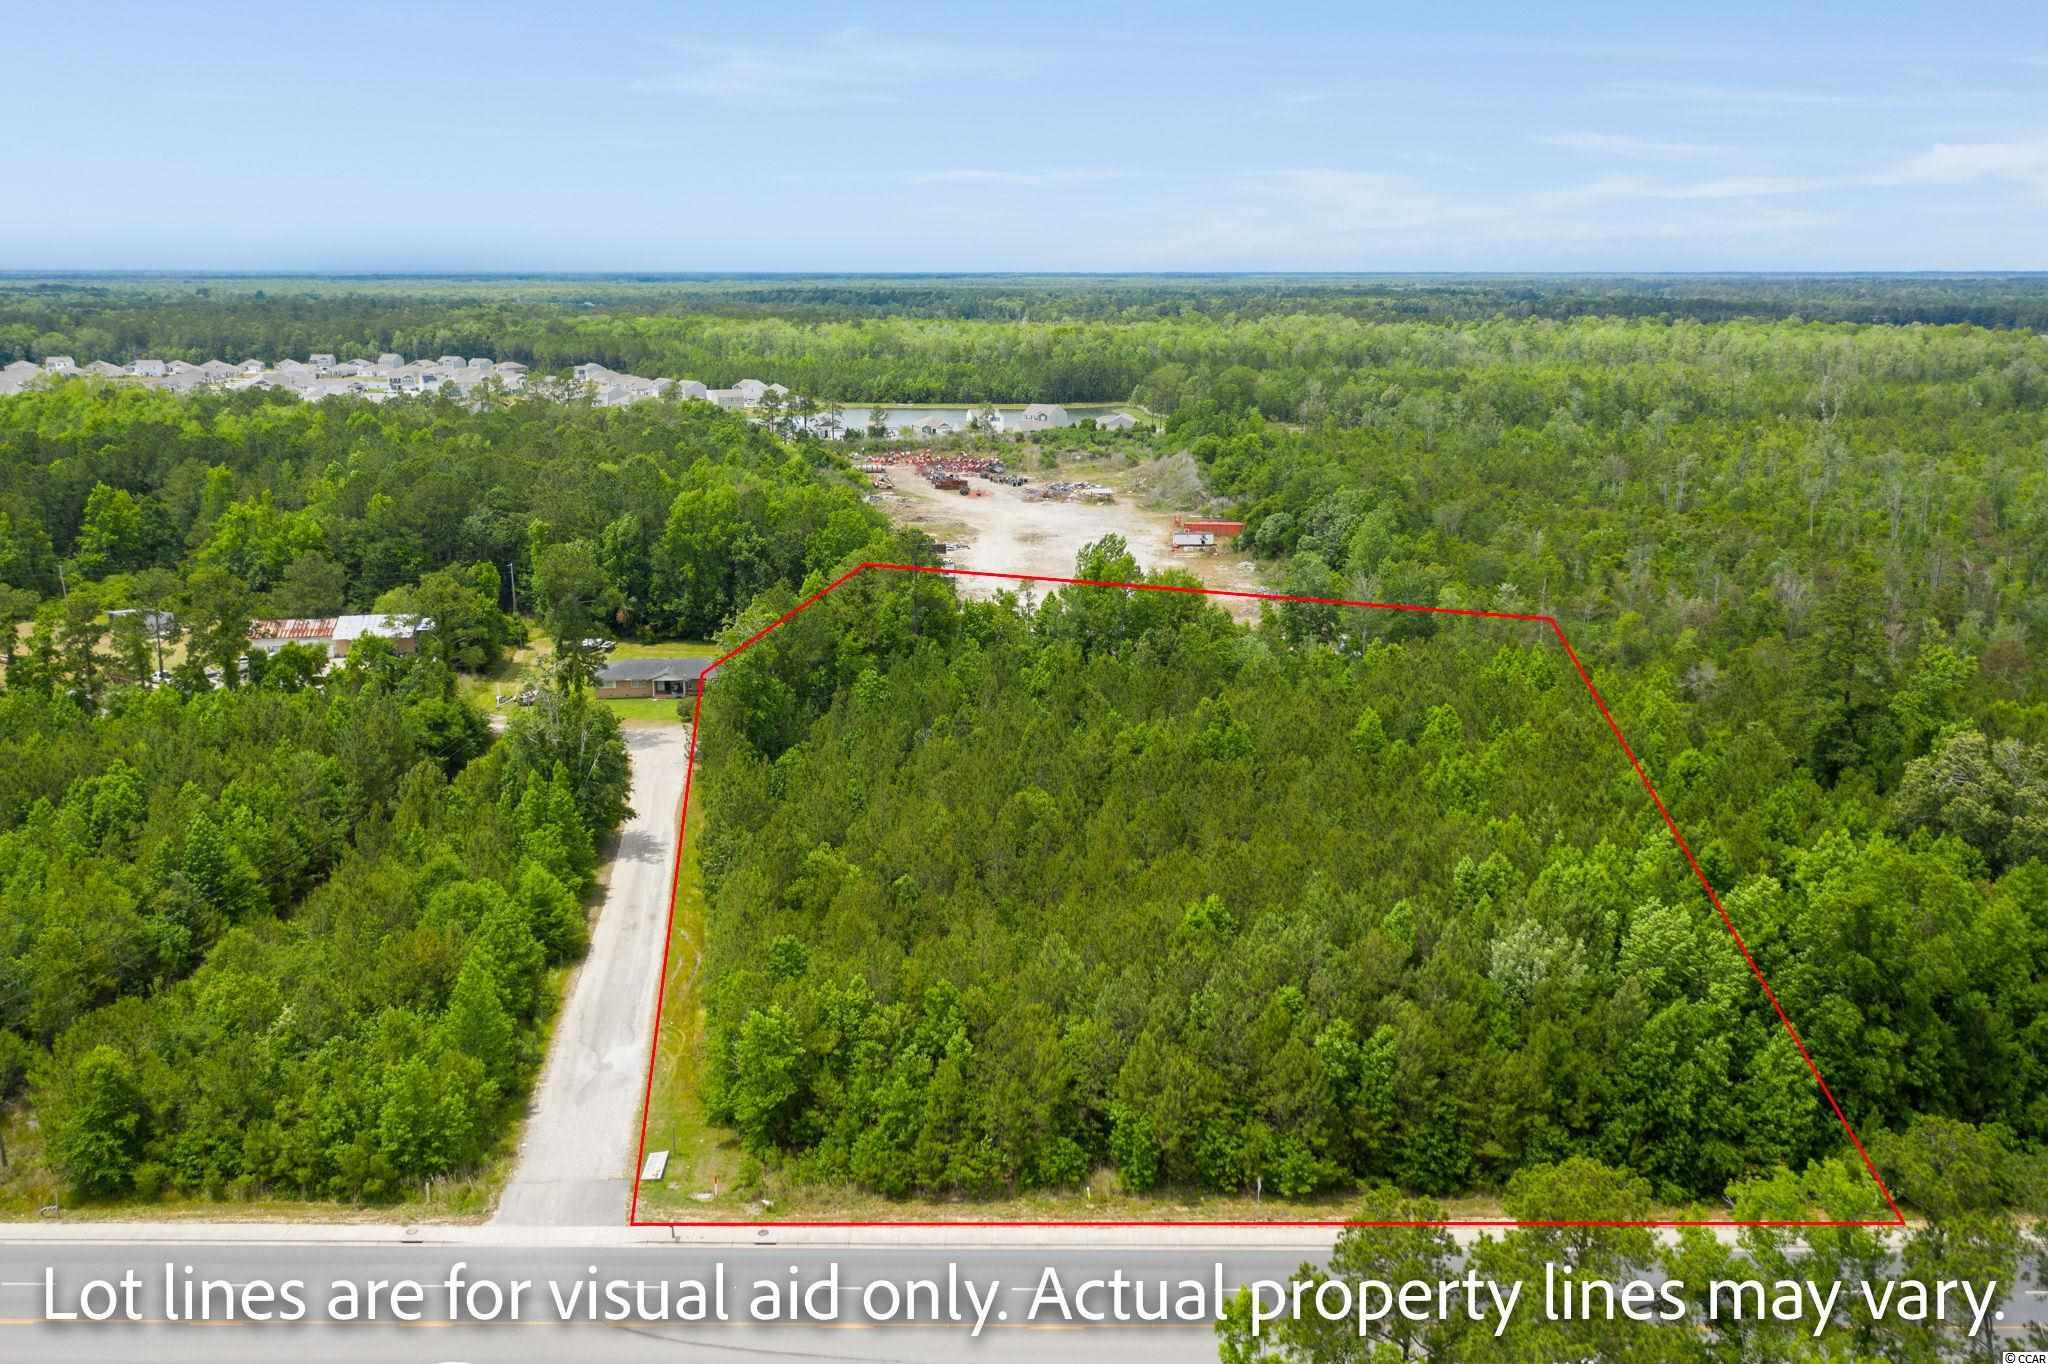 Build your dream home on 1.87 acres, with no HOA located on Hwy. 707 in Myrtle Beach. Land can also be subdivided into 20,000 sq. foot lots, equaling 3 separate home-sites. No timeframe to build. Land is approved for stick builds or manufactured homes. Location provides easy access to restaurants, shopping, golfing, and the beach.